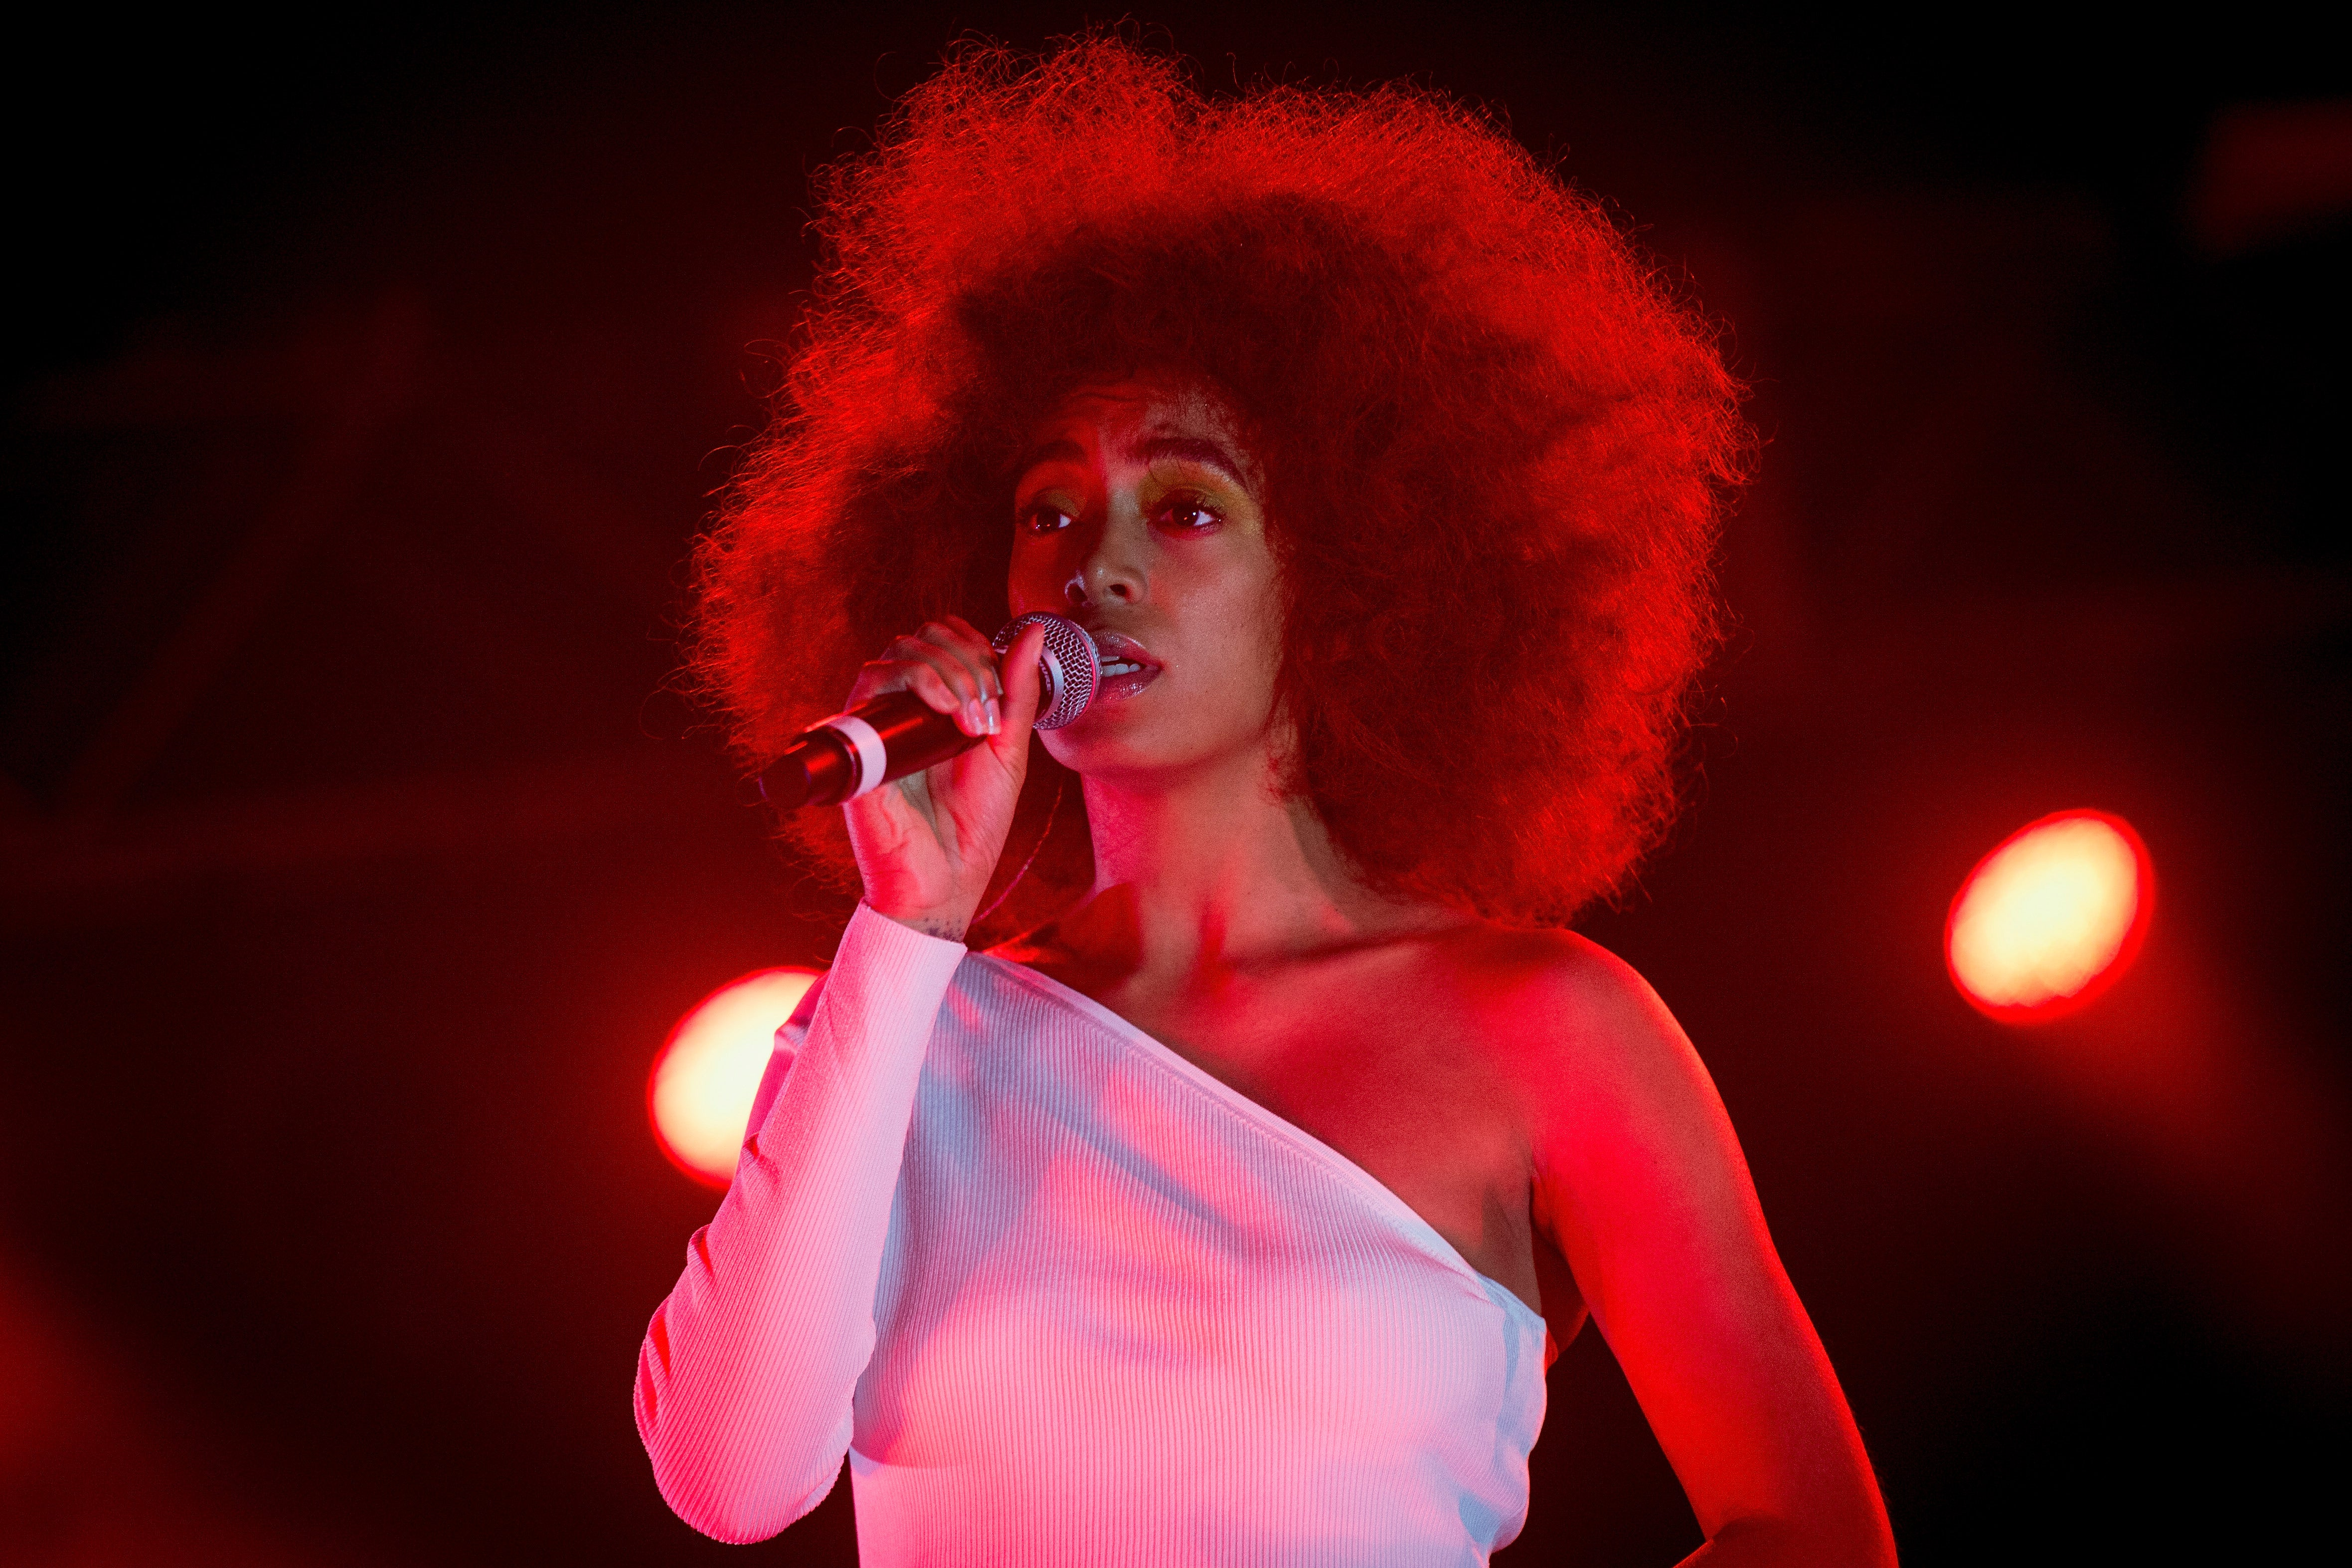 What Is Solange Up To? Fans Lose It Over Singer's BlackPlanet Takeover